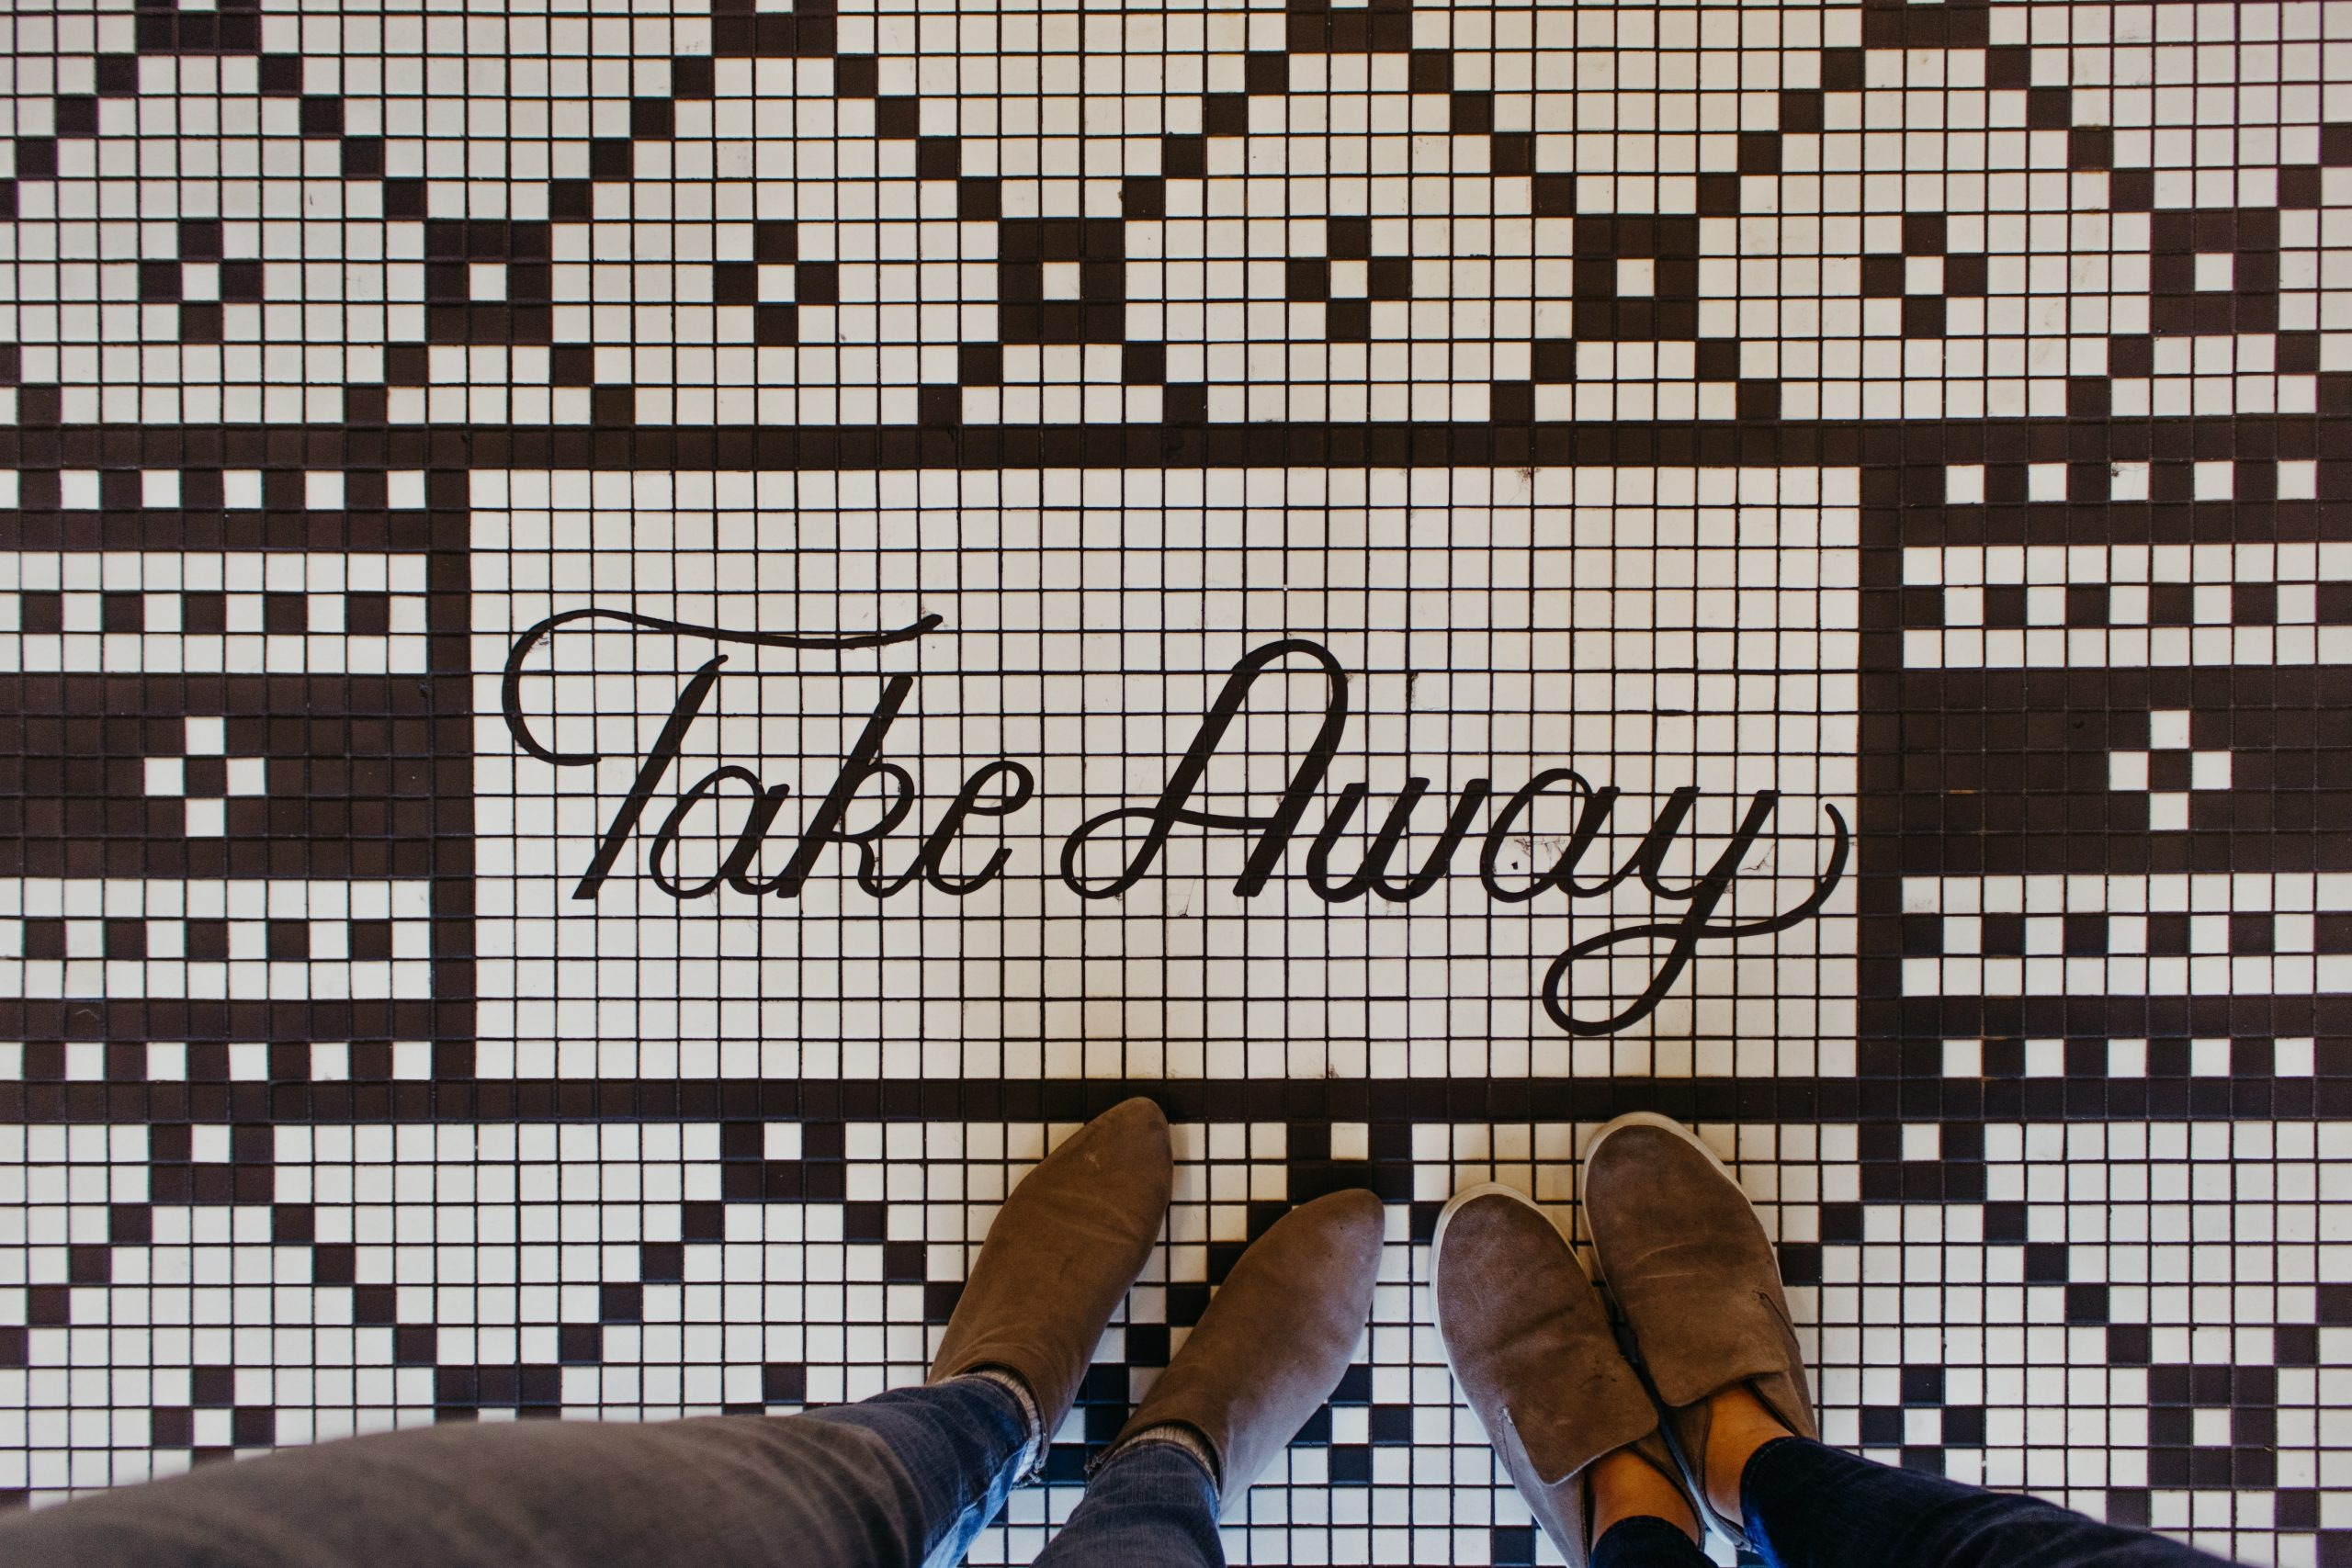 'Take Away' mosaic floor. Photo by Briana Tozour on Unsplash